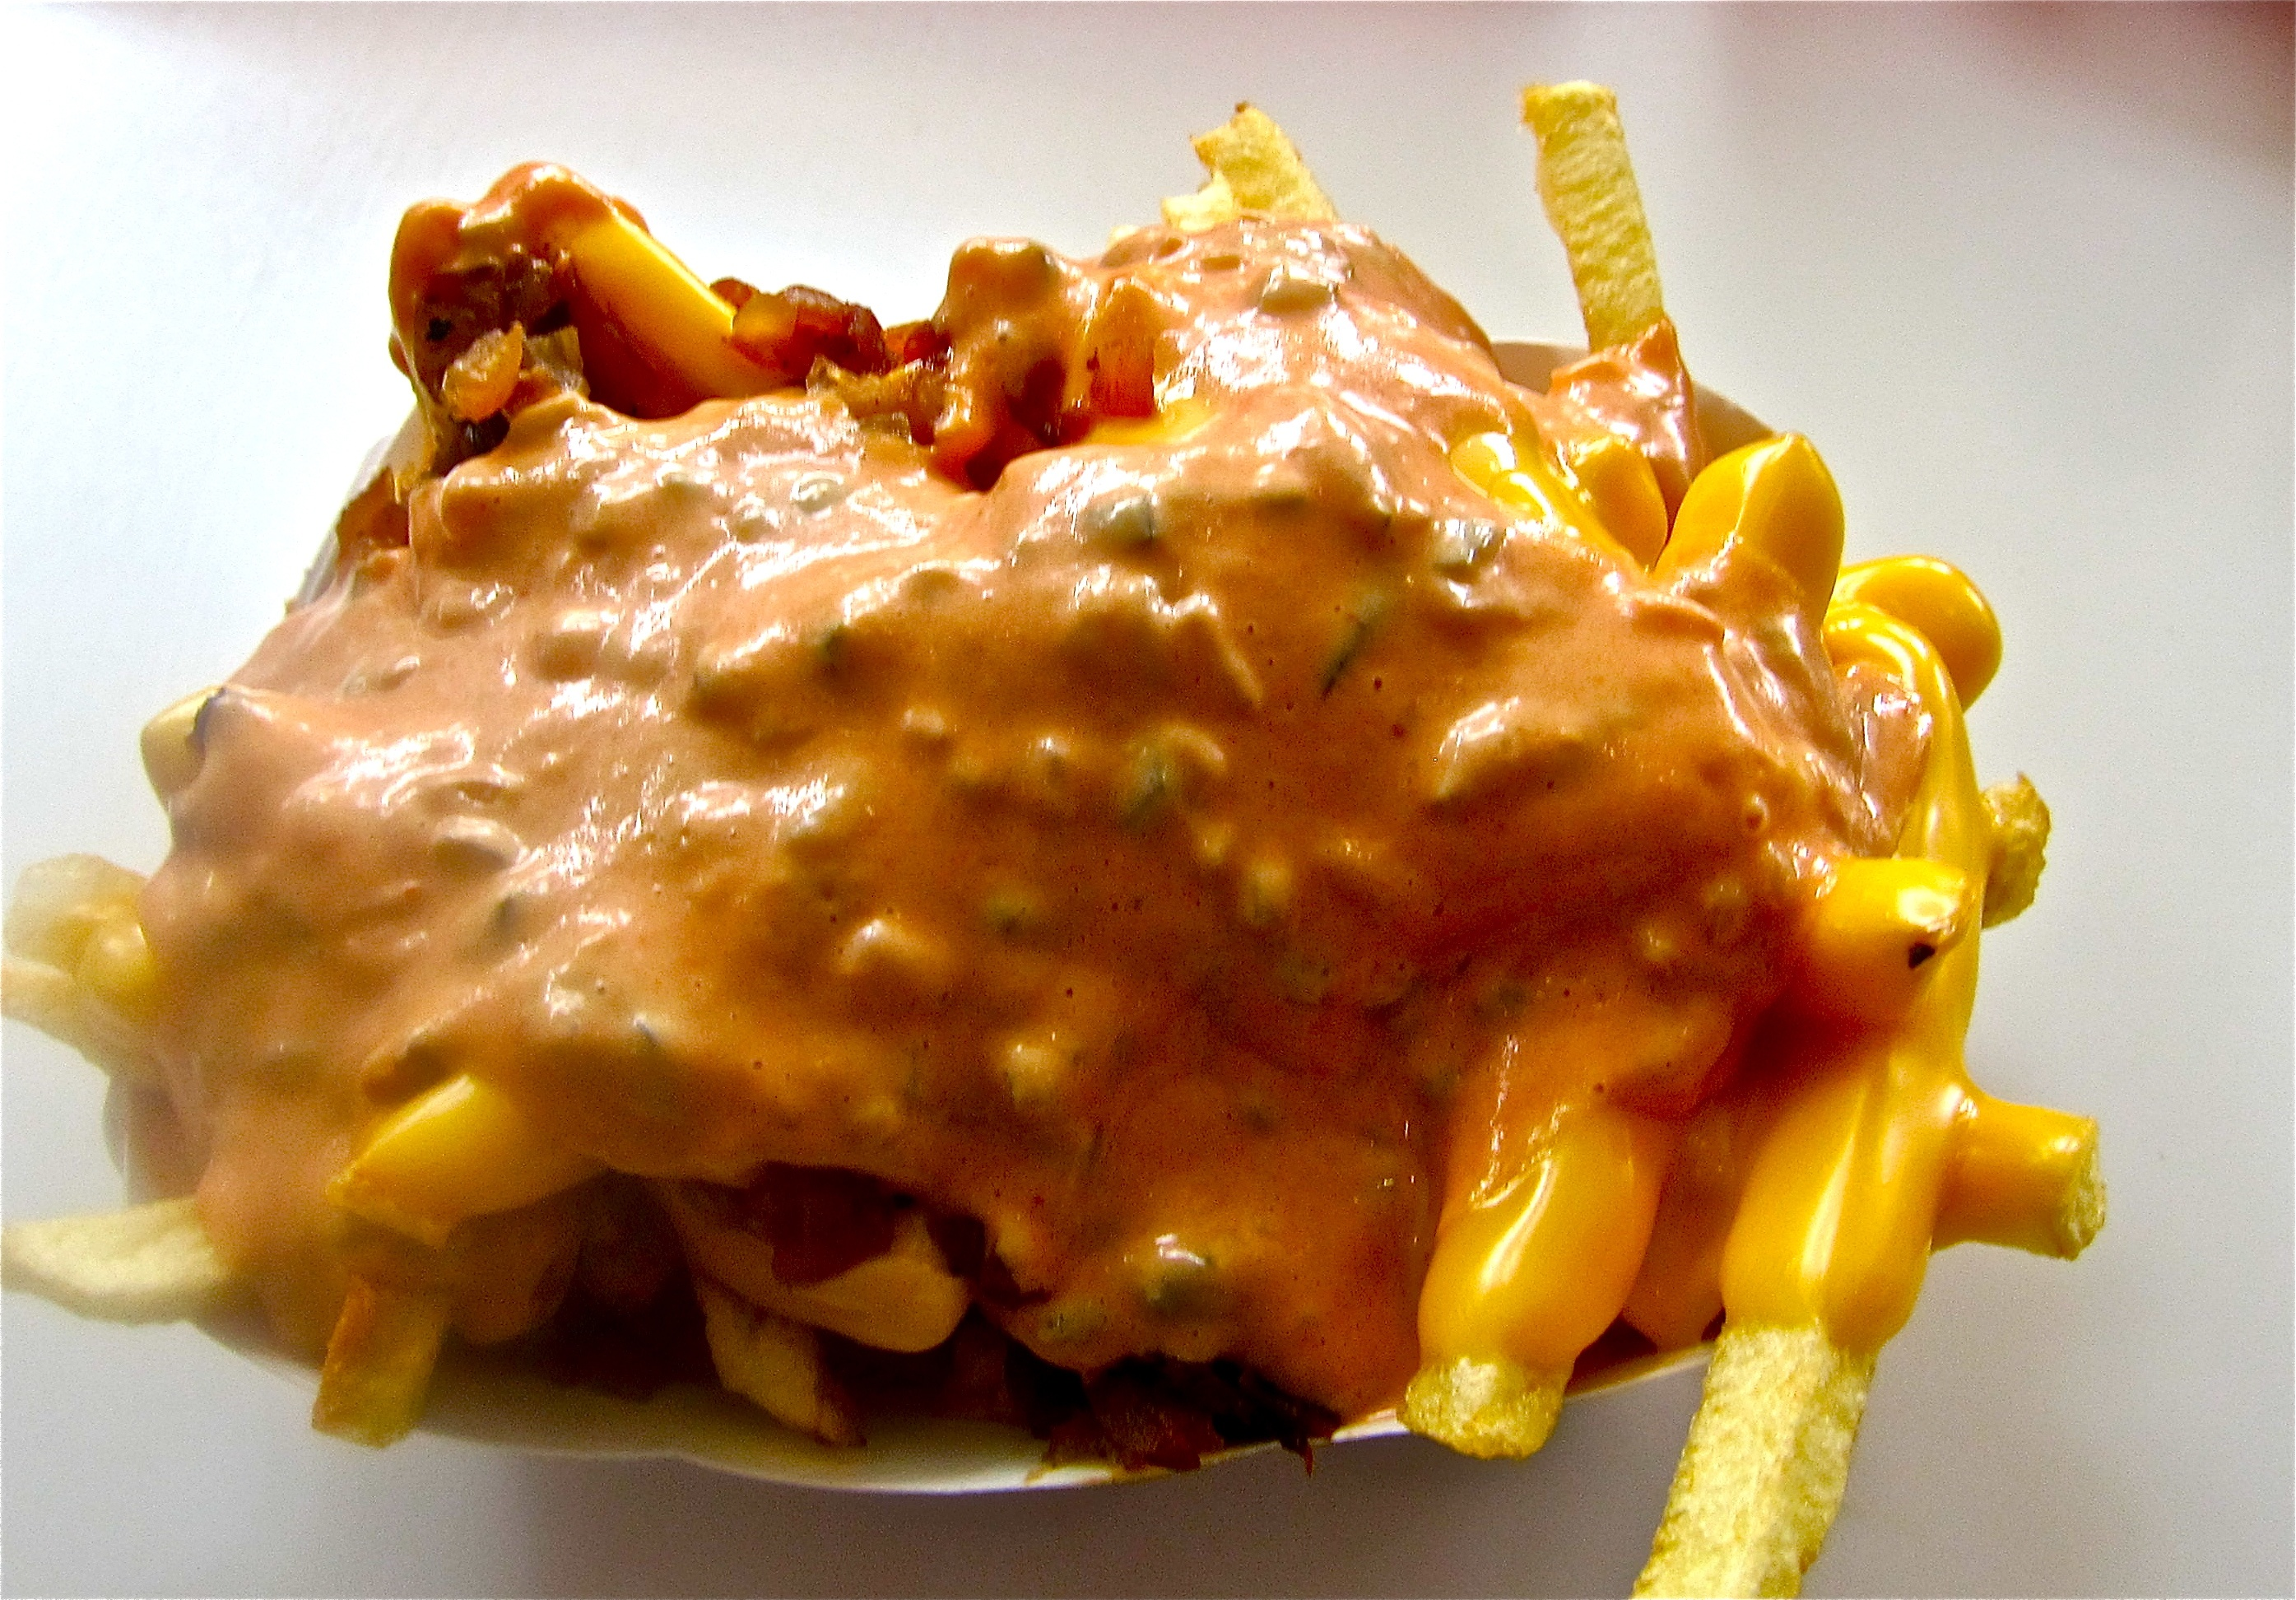 In-N-Out Animal-style Fries   BatteryPark TV We Inform